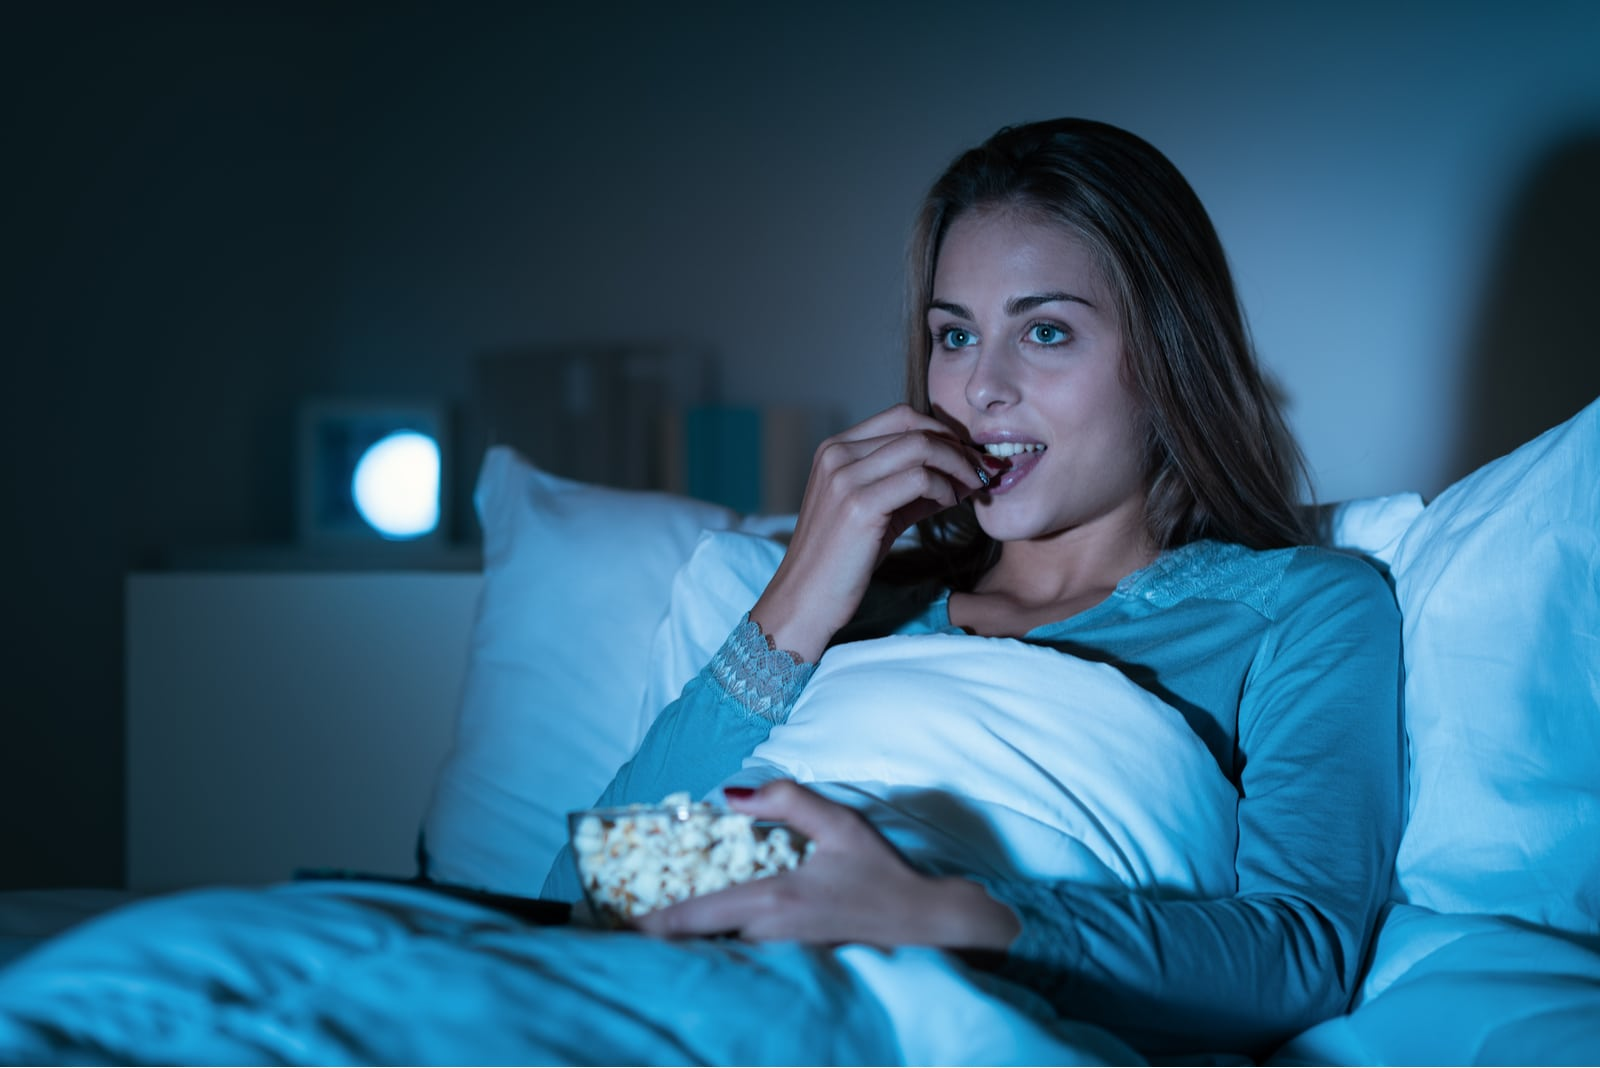 happy woman relaxing in bed and watching movies